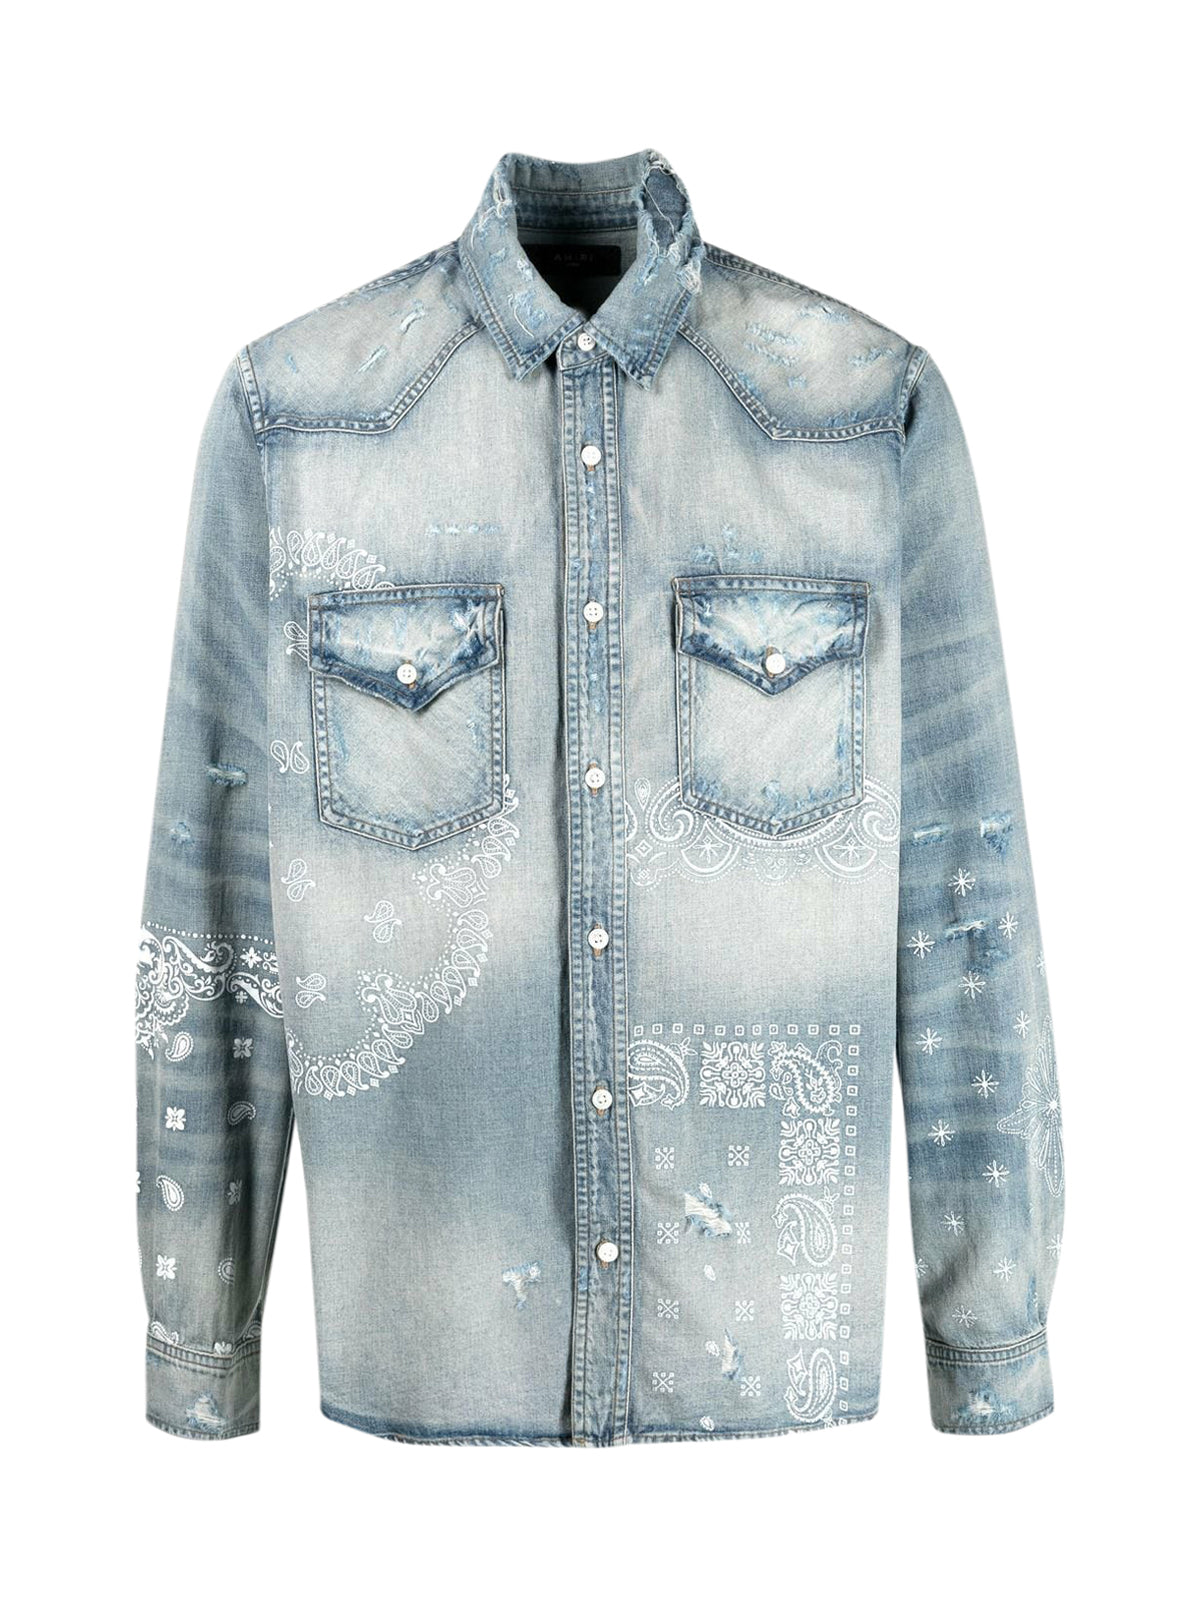 graphic-print denim shirt